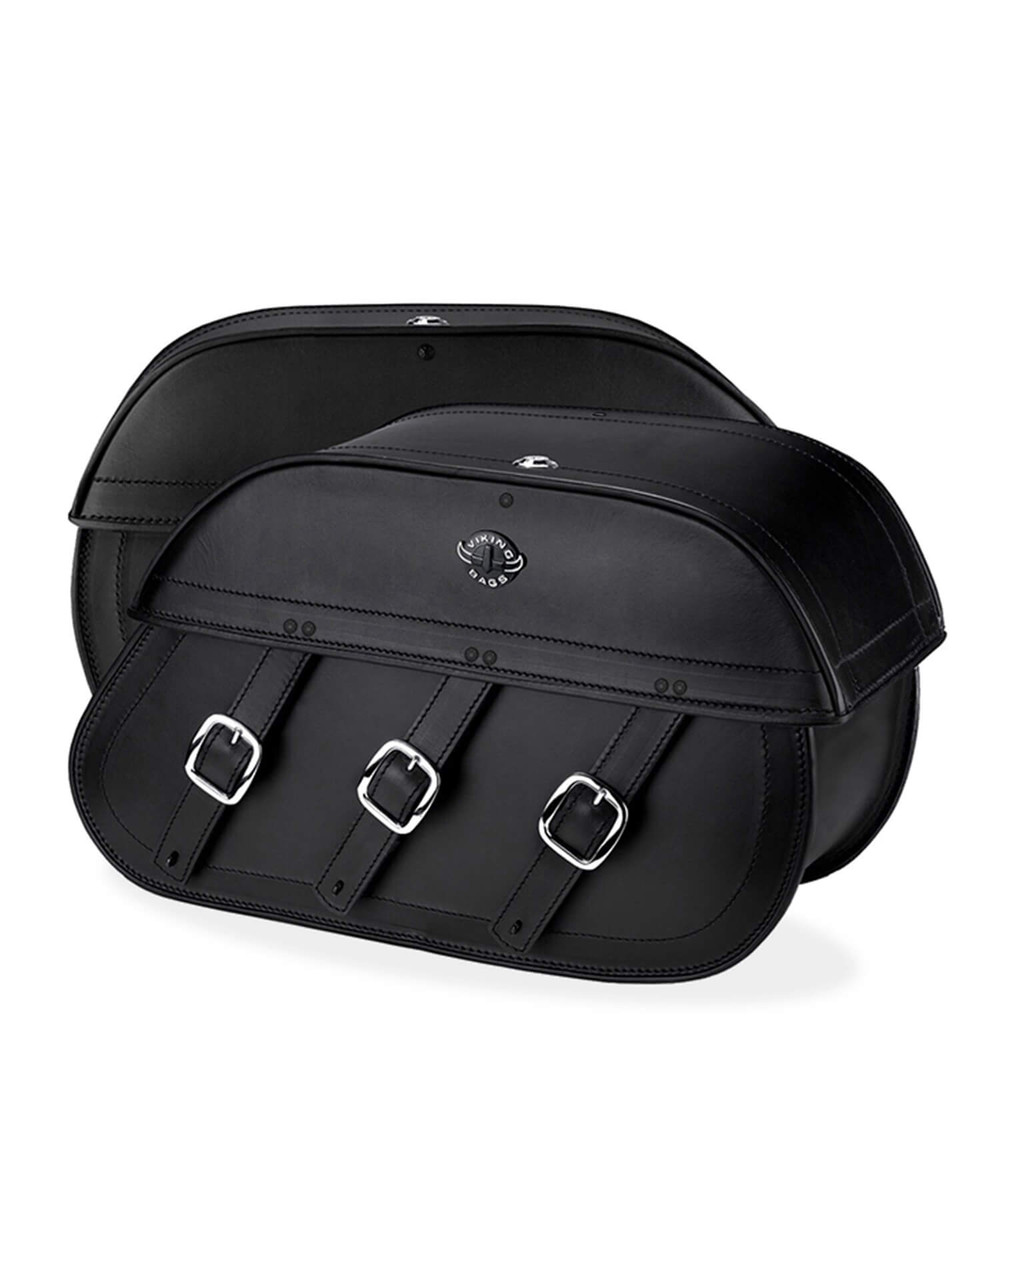 Victory Boardwalk Trianon Motorcycle Saddlebags Both Bags View